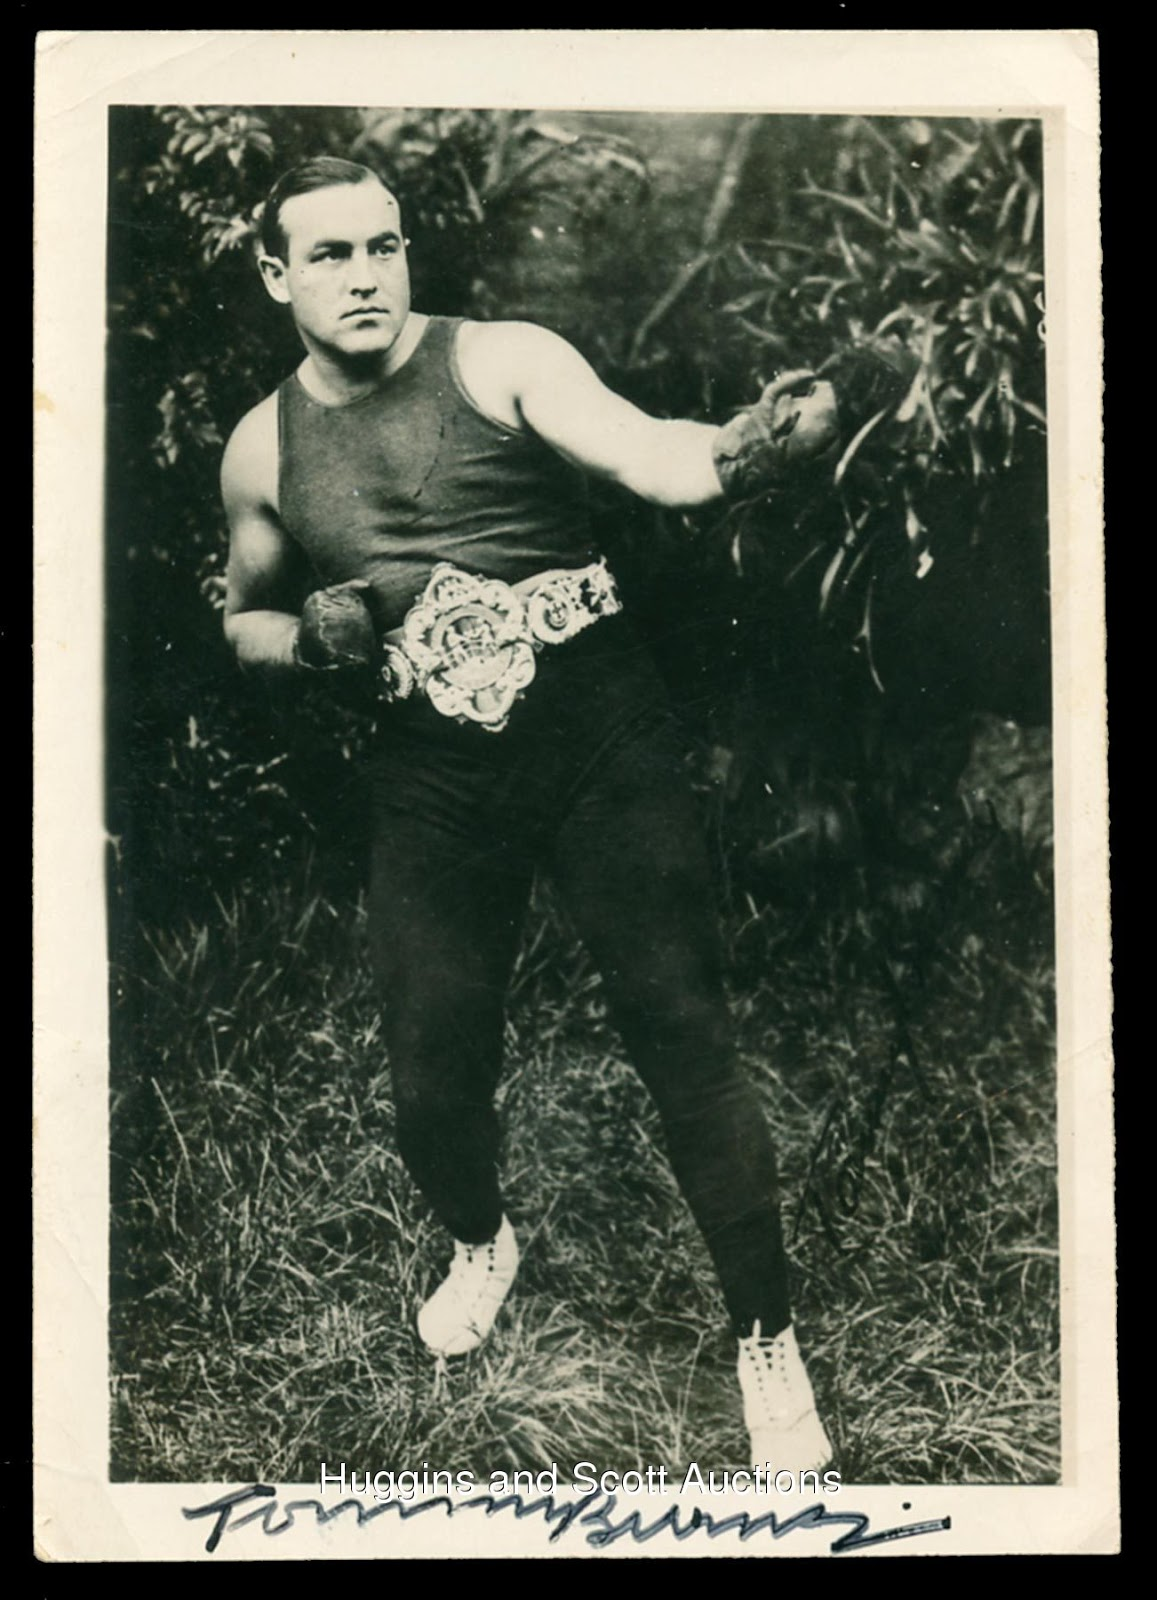 tommy burns boxer biography of martin